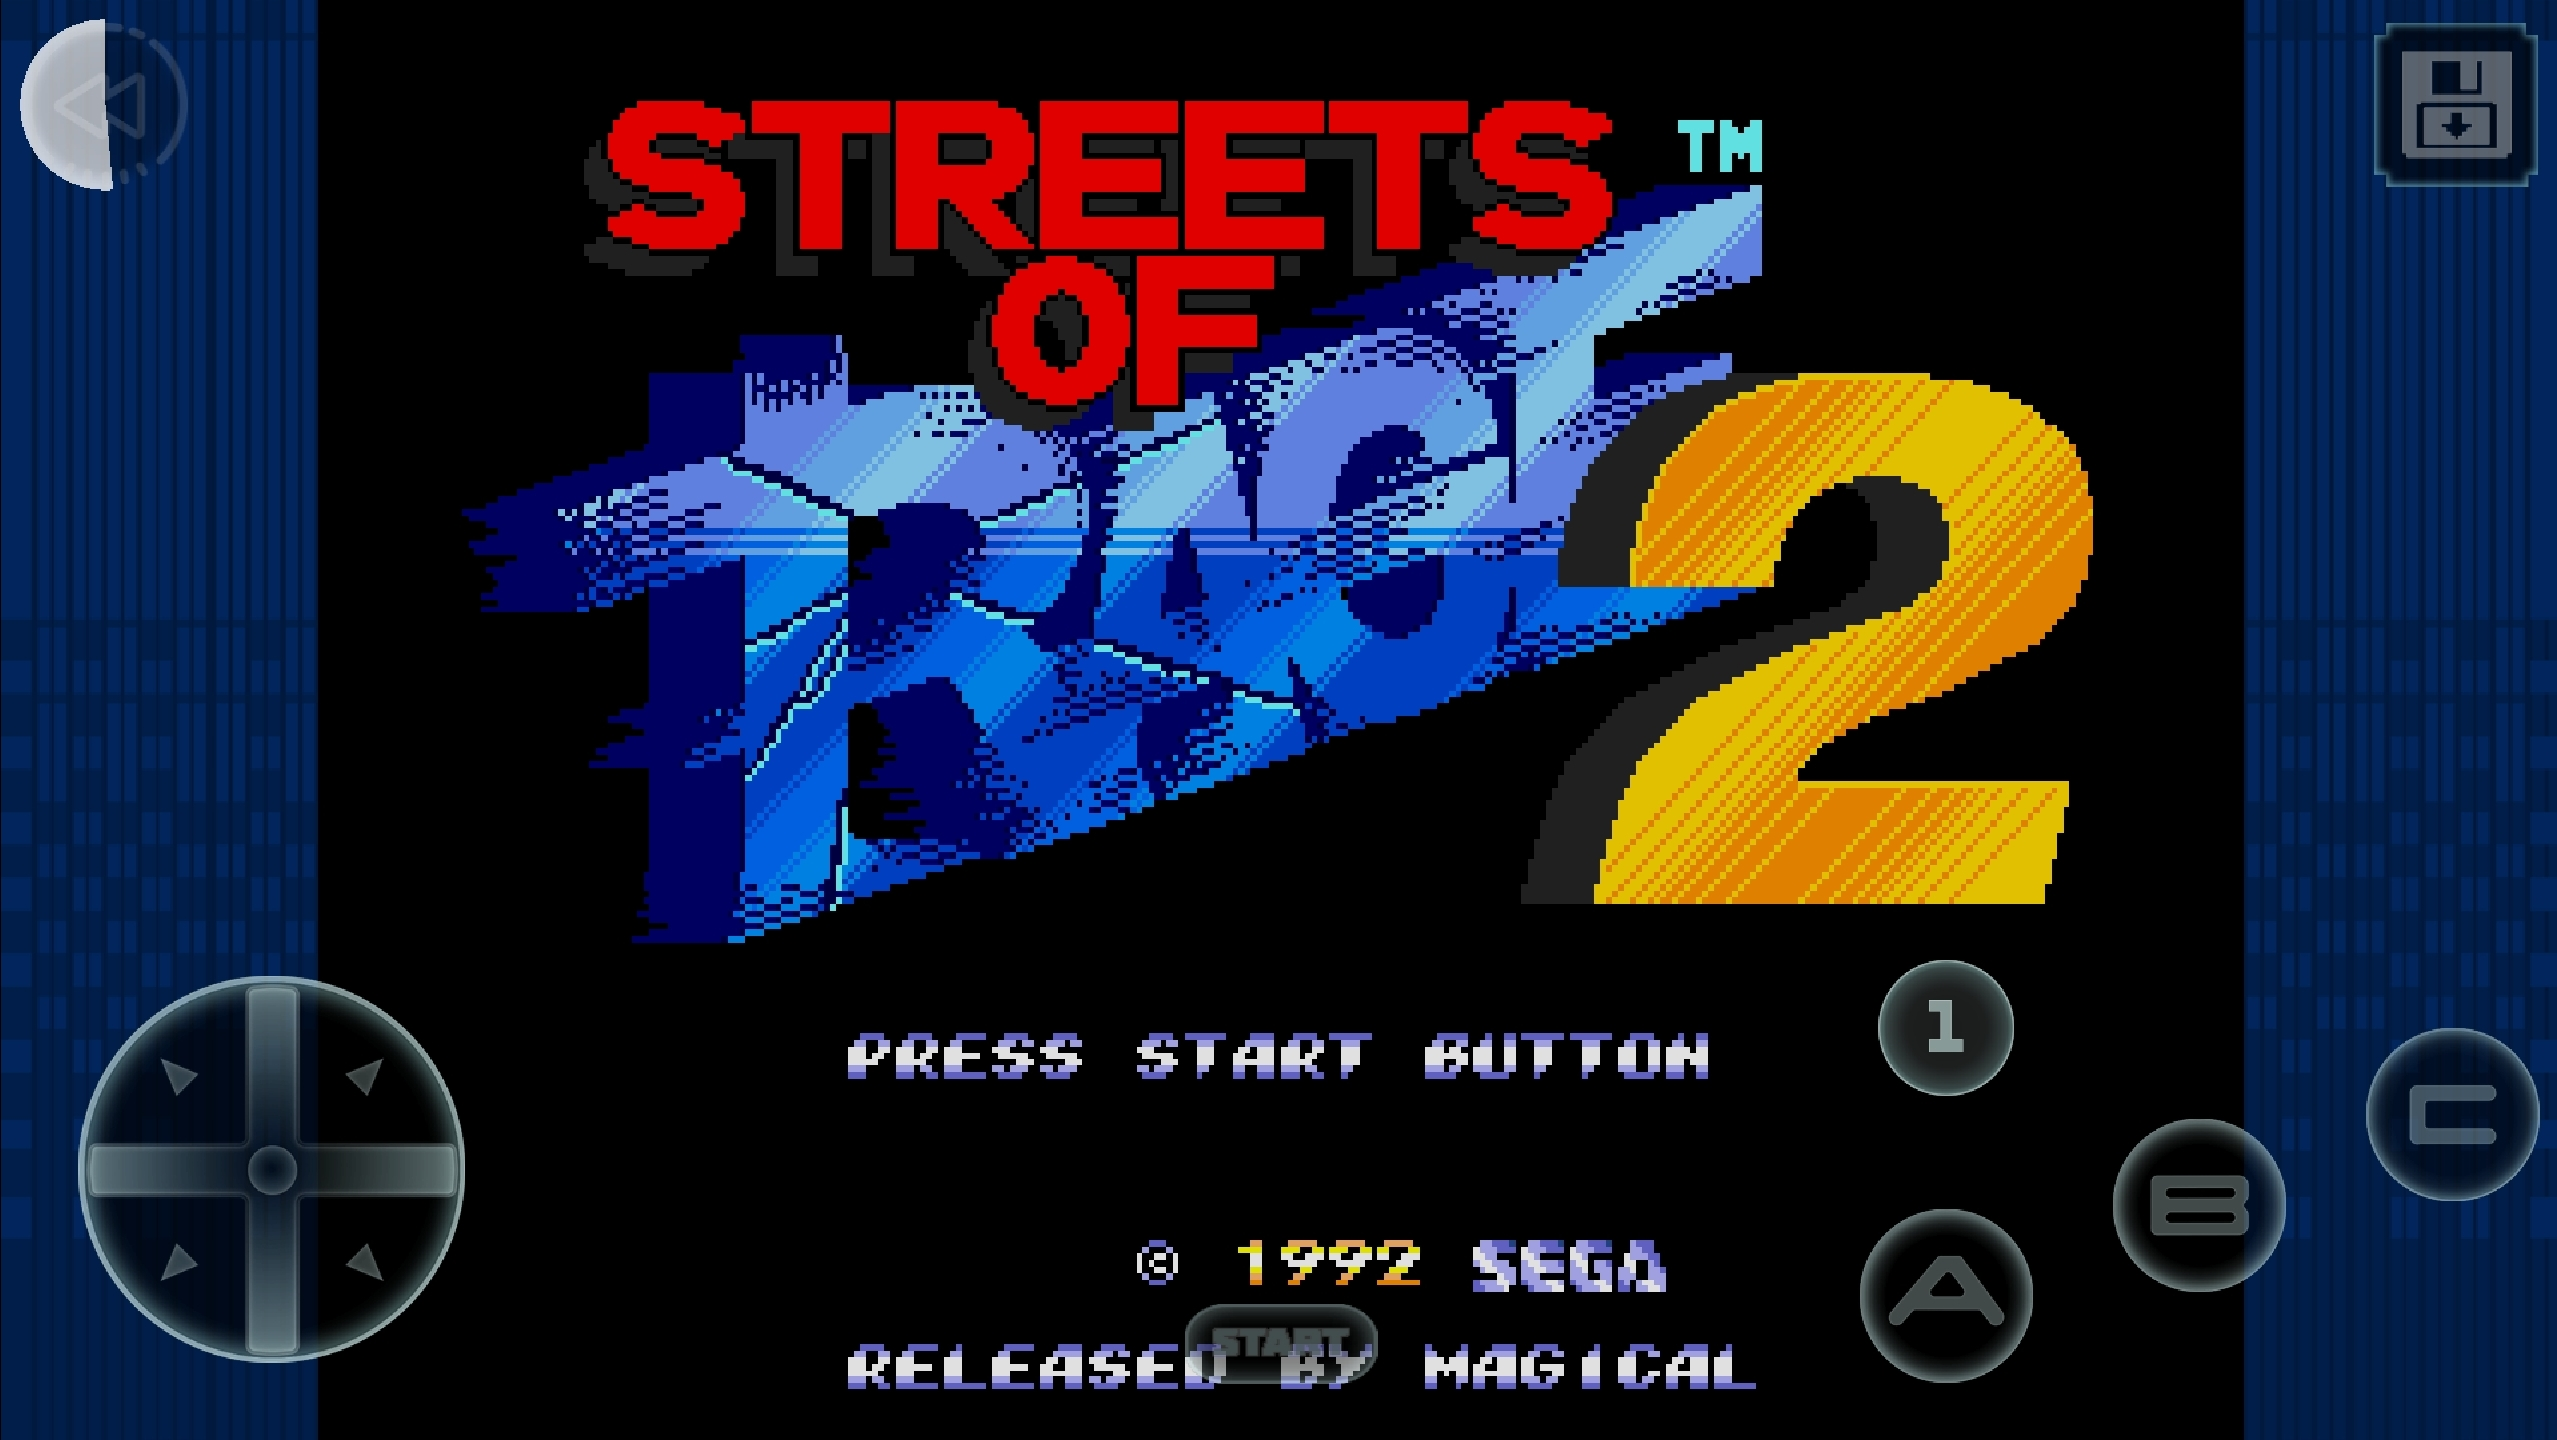 Streets Of Rage 2 Classic Is The Latest Sega Forever Title On The